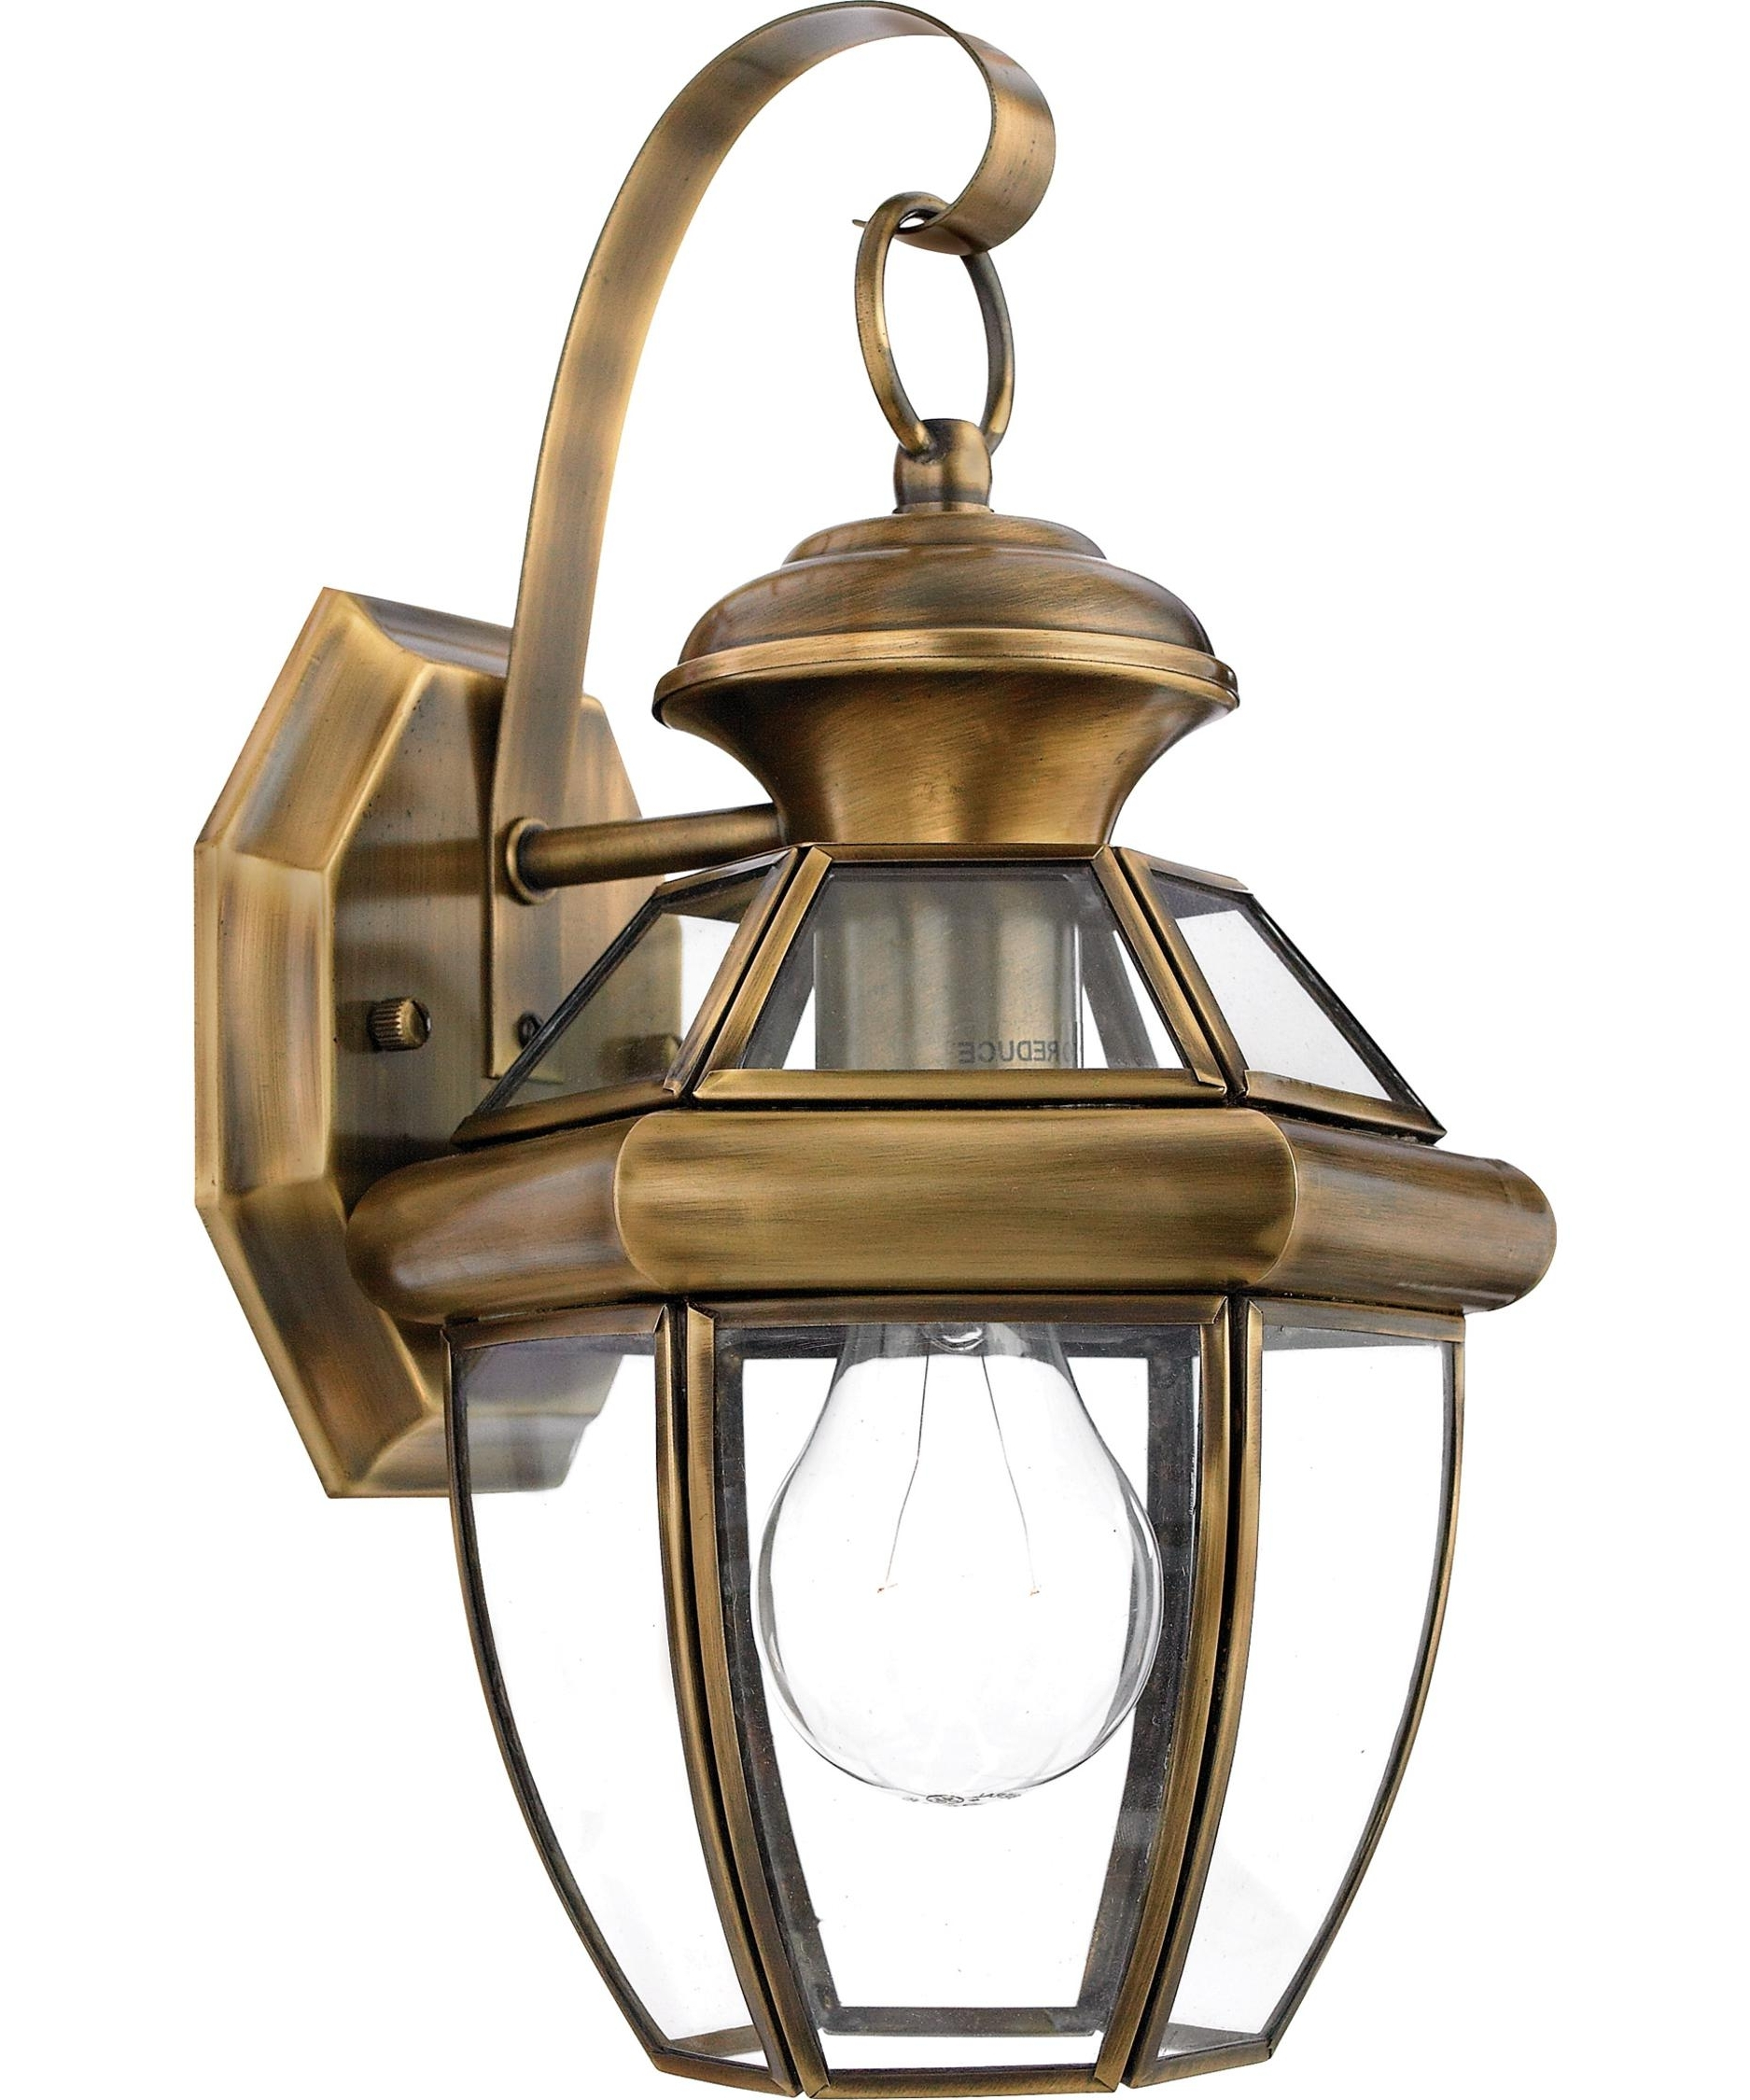 Best And Newest Quoizel Ny8315 Newbury 7 Inch Wide 1 Light Outdoor Wall Light Intended For Antique Brass Outdoor Lighting (View 9 of 20)